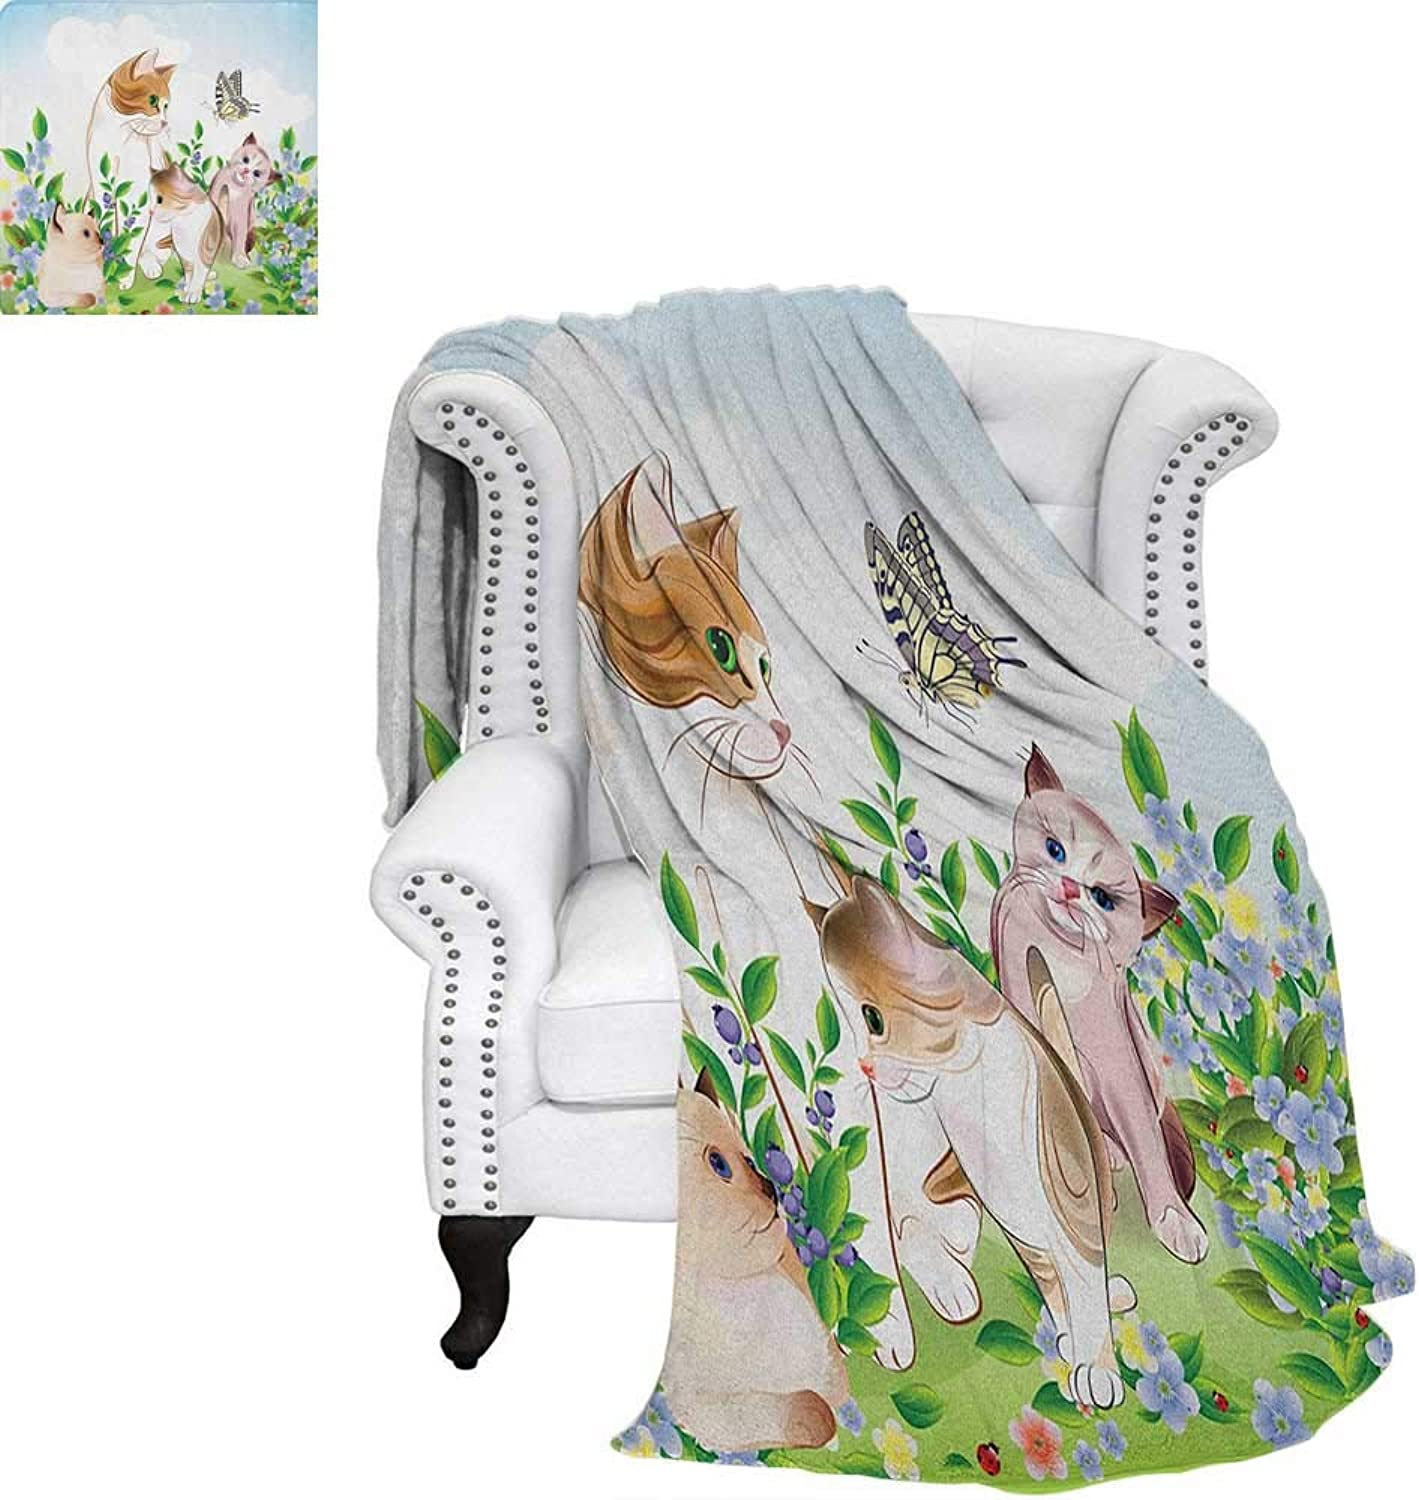 CatFlannel Single Student blanketCute Kittens in Flower Meadow Field Happy Cats Family with Butterfly Kids Cartoon PrintStudent Blanket 60 x50  Multi